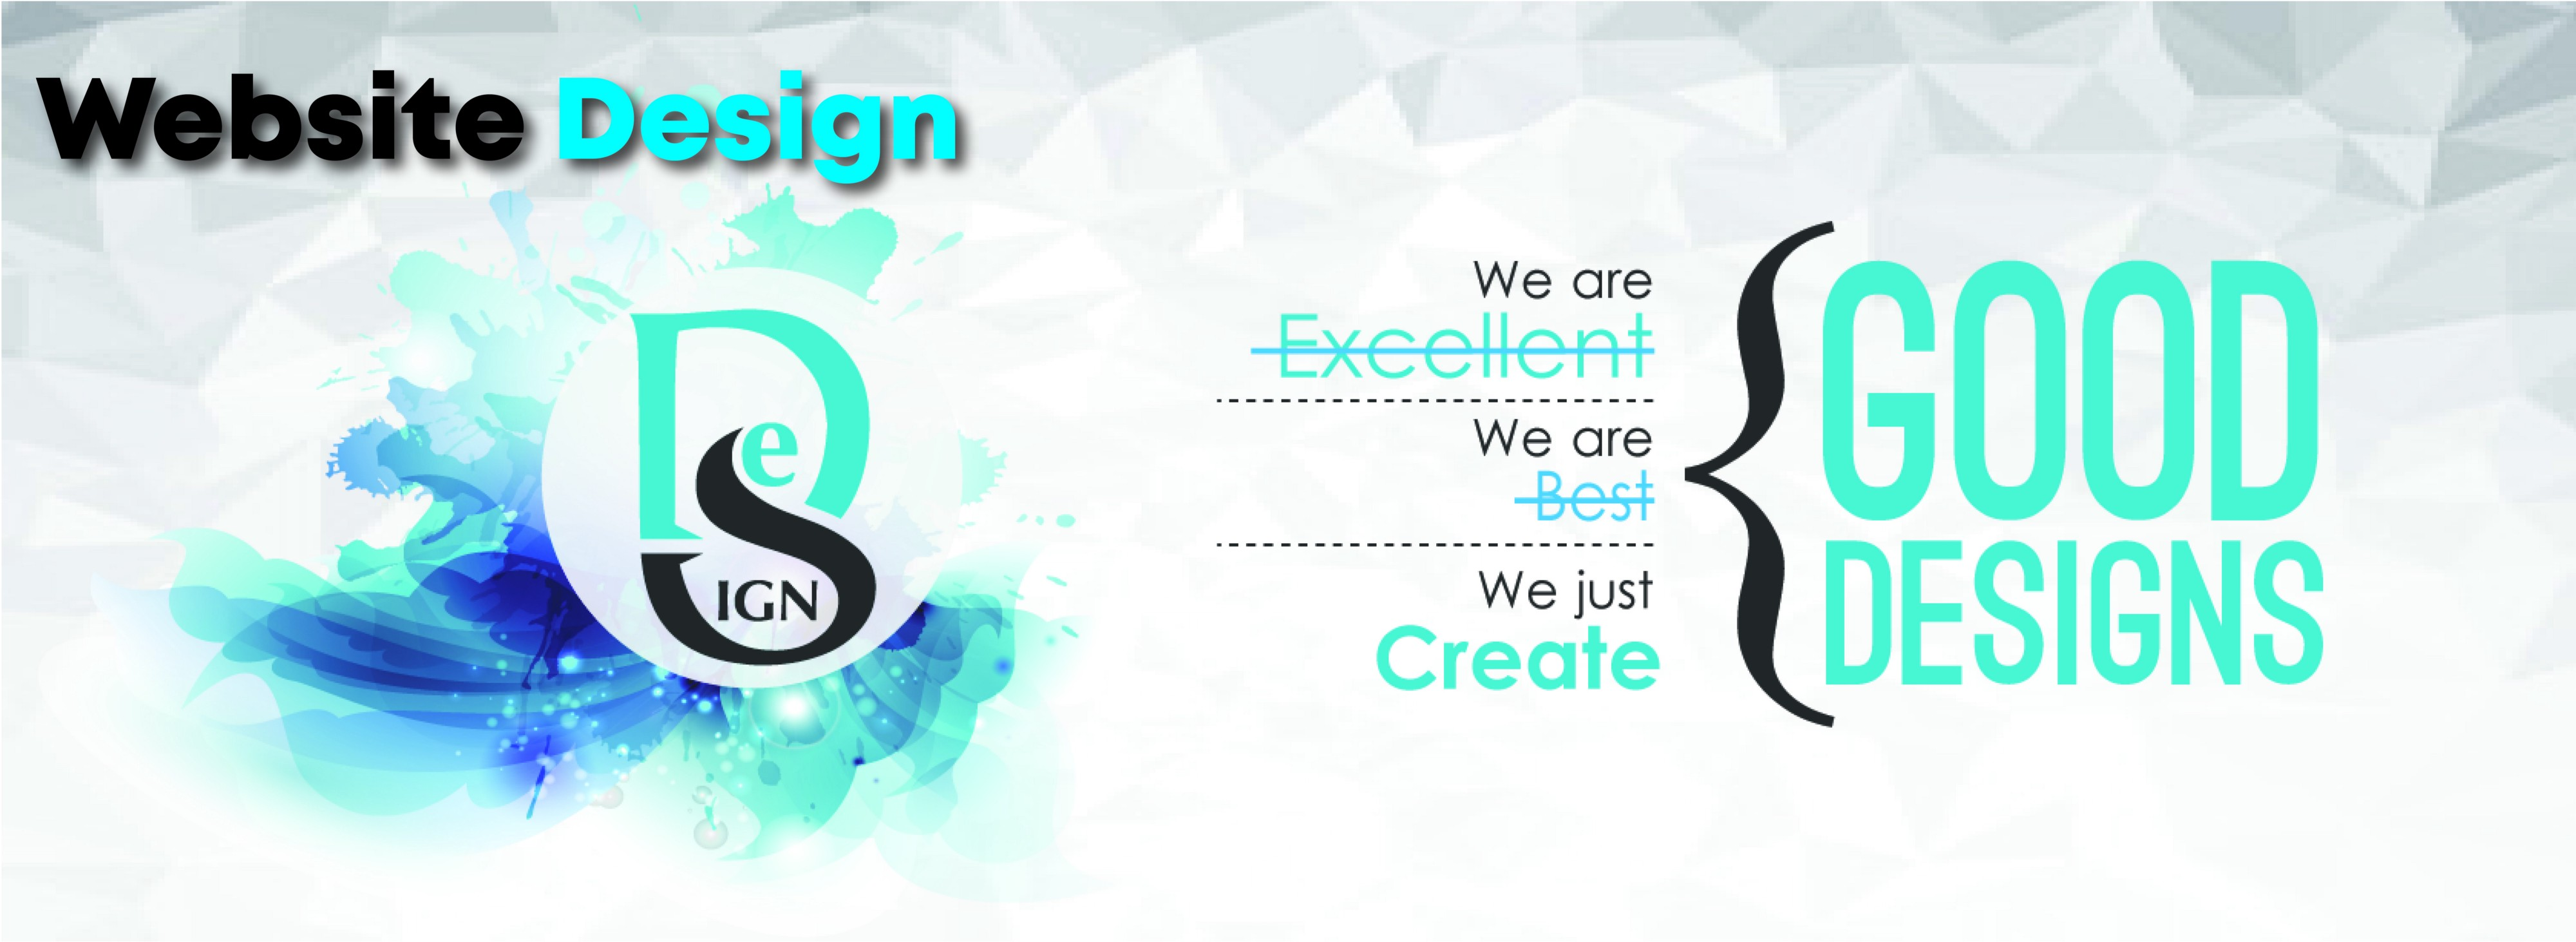 Affordable Web Design Company In Chicago Il By Kate Anderson Medium